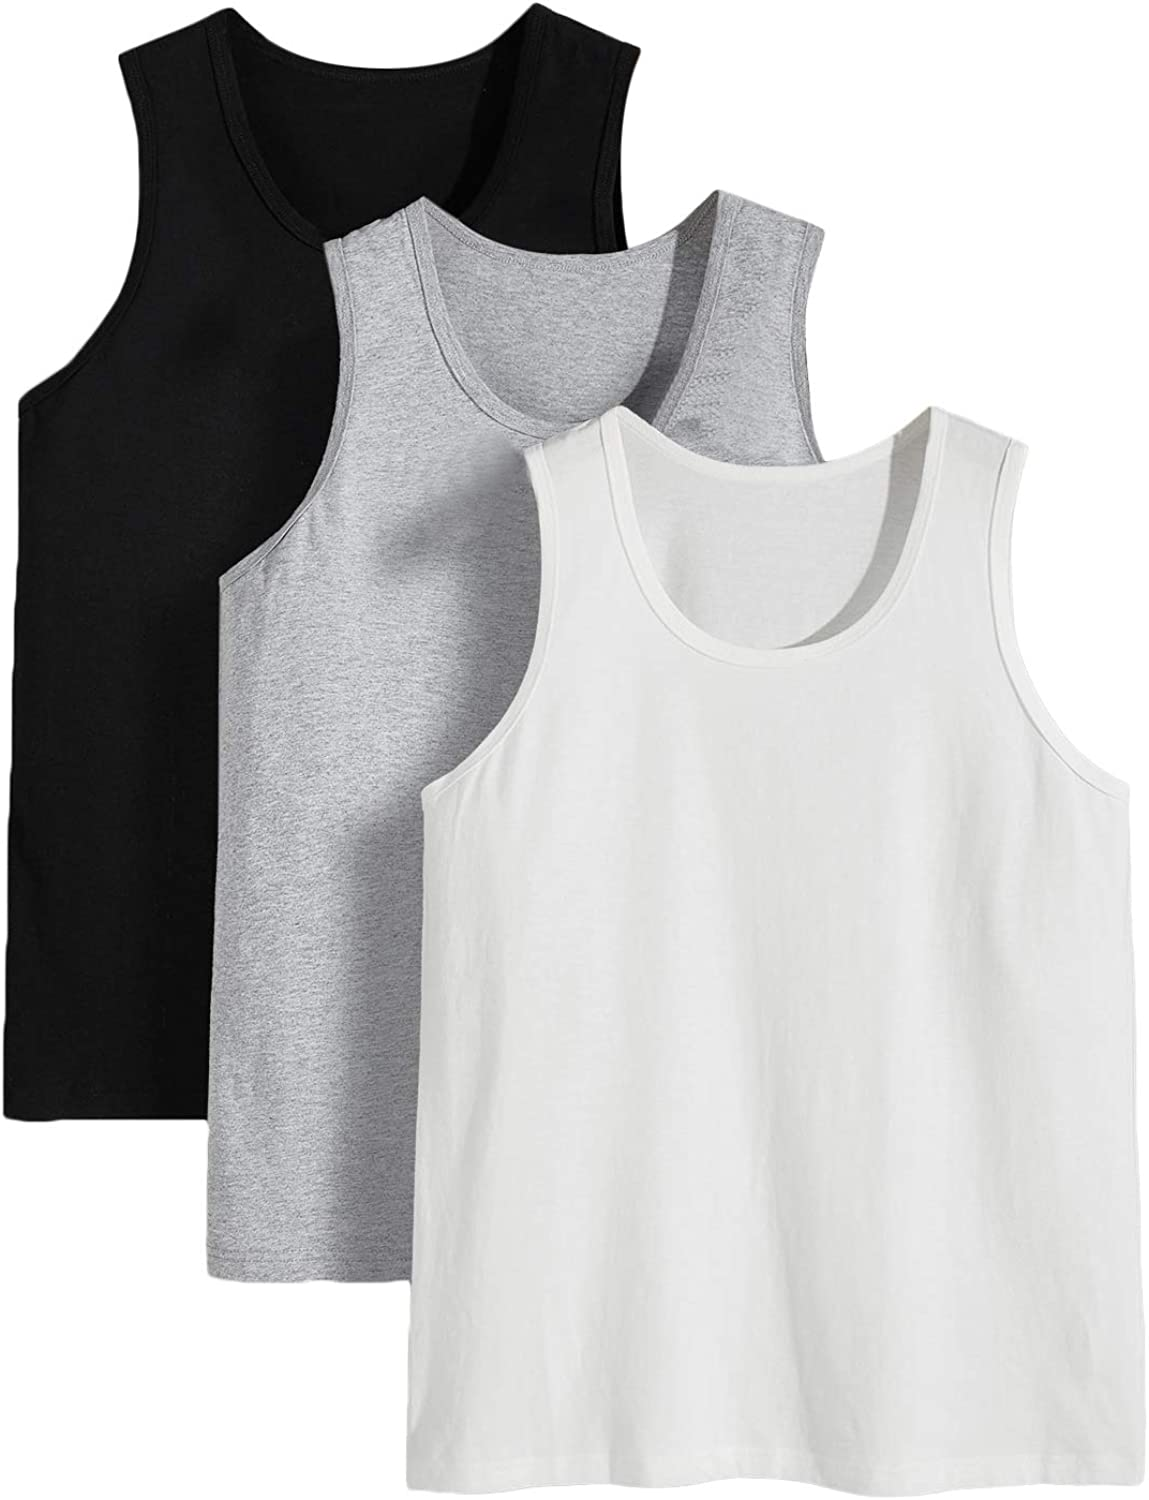 Romwe Men's 3 Max 86% OFF Pack Bargain Classic Workout Undershirts Muscle S Top Tank